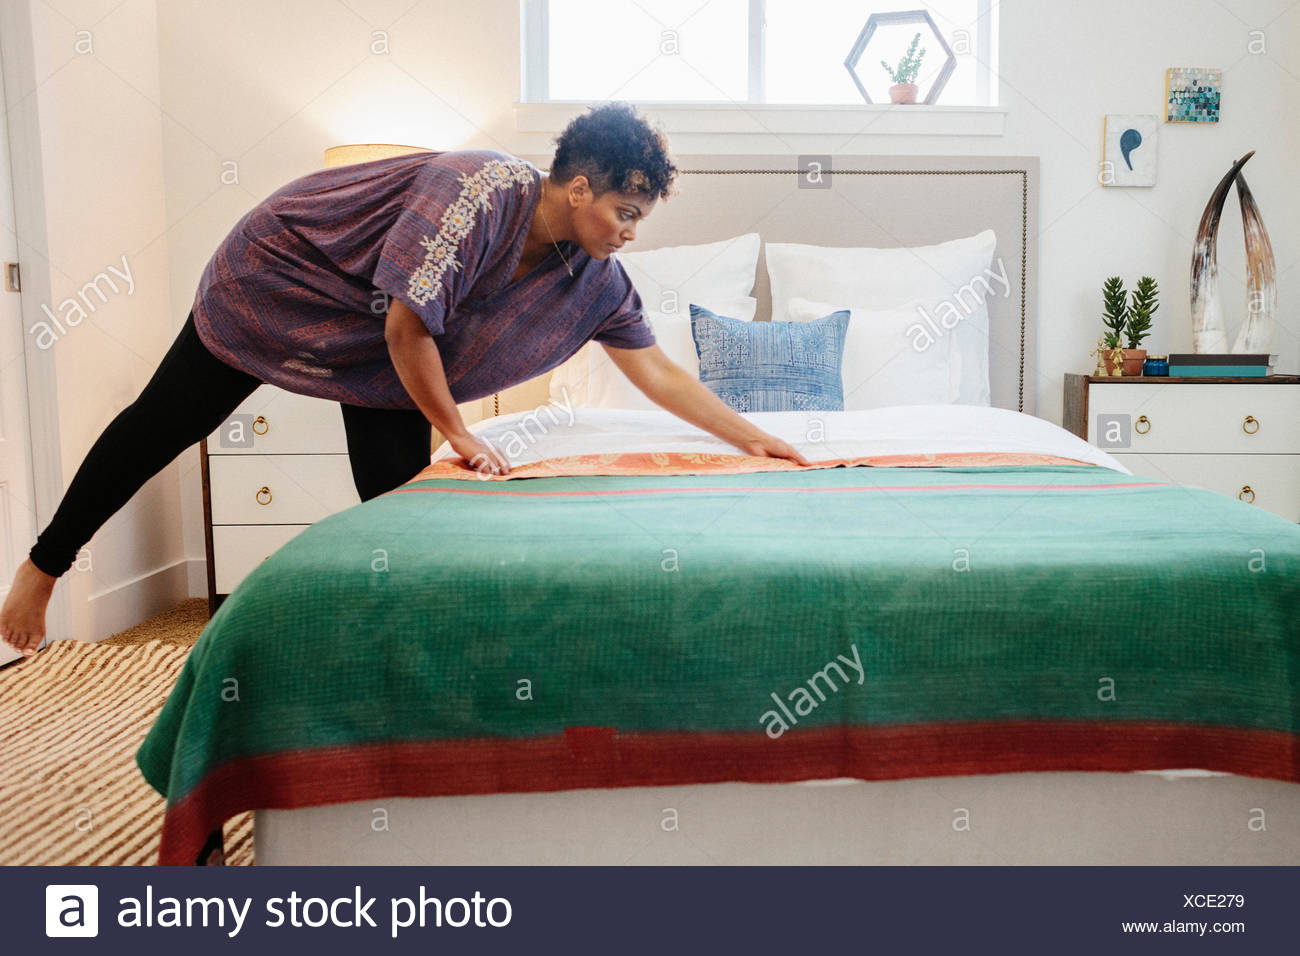 A woman smoothing a green fabric quilt  with red trim over a double bed in a light airy apartment - Stock Image